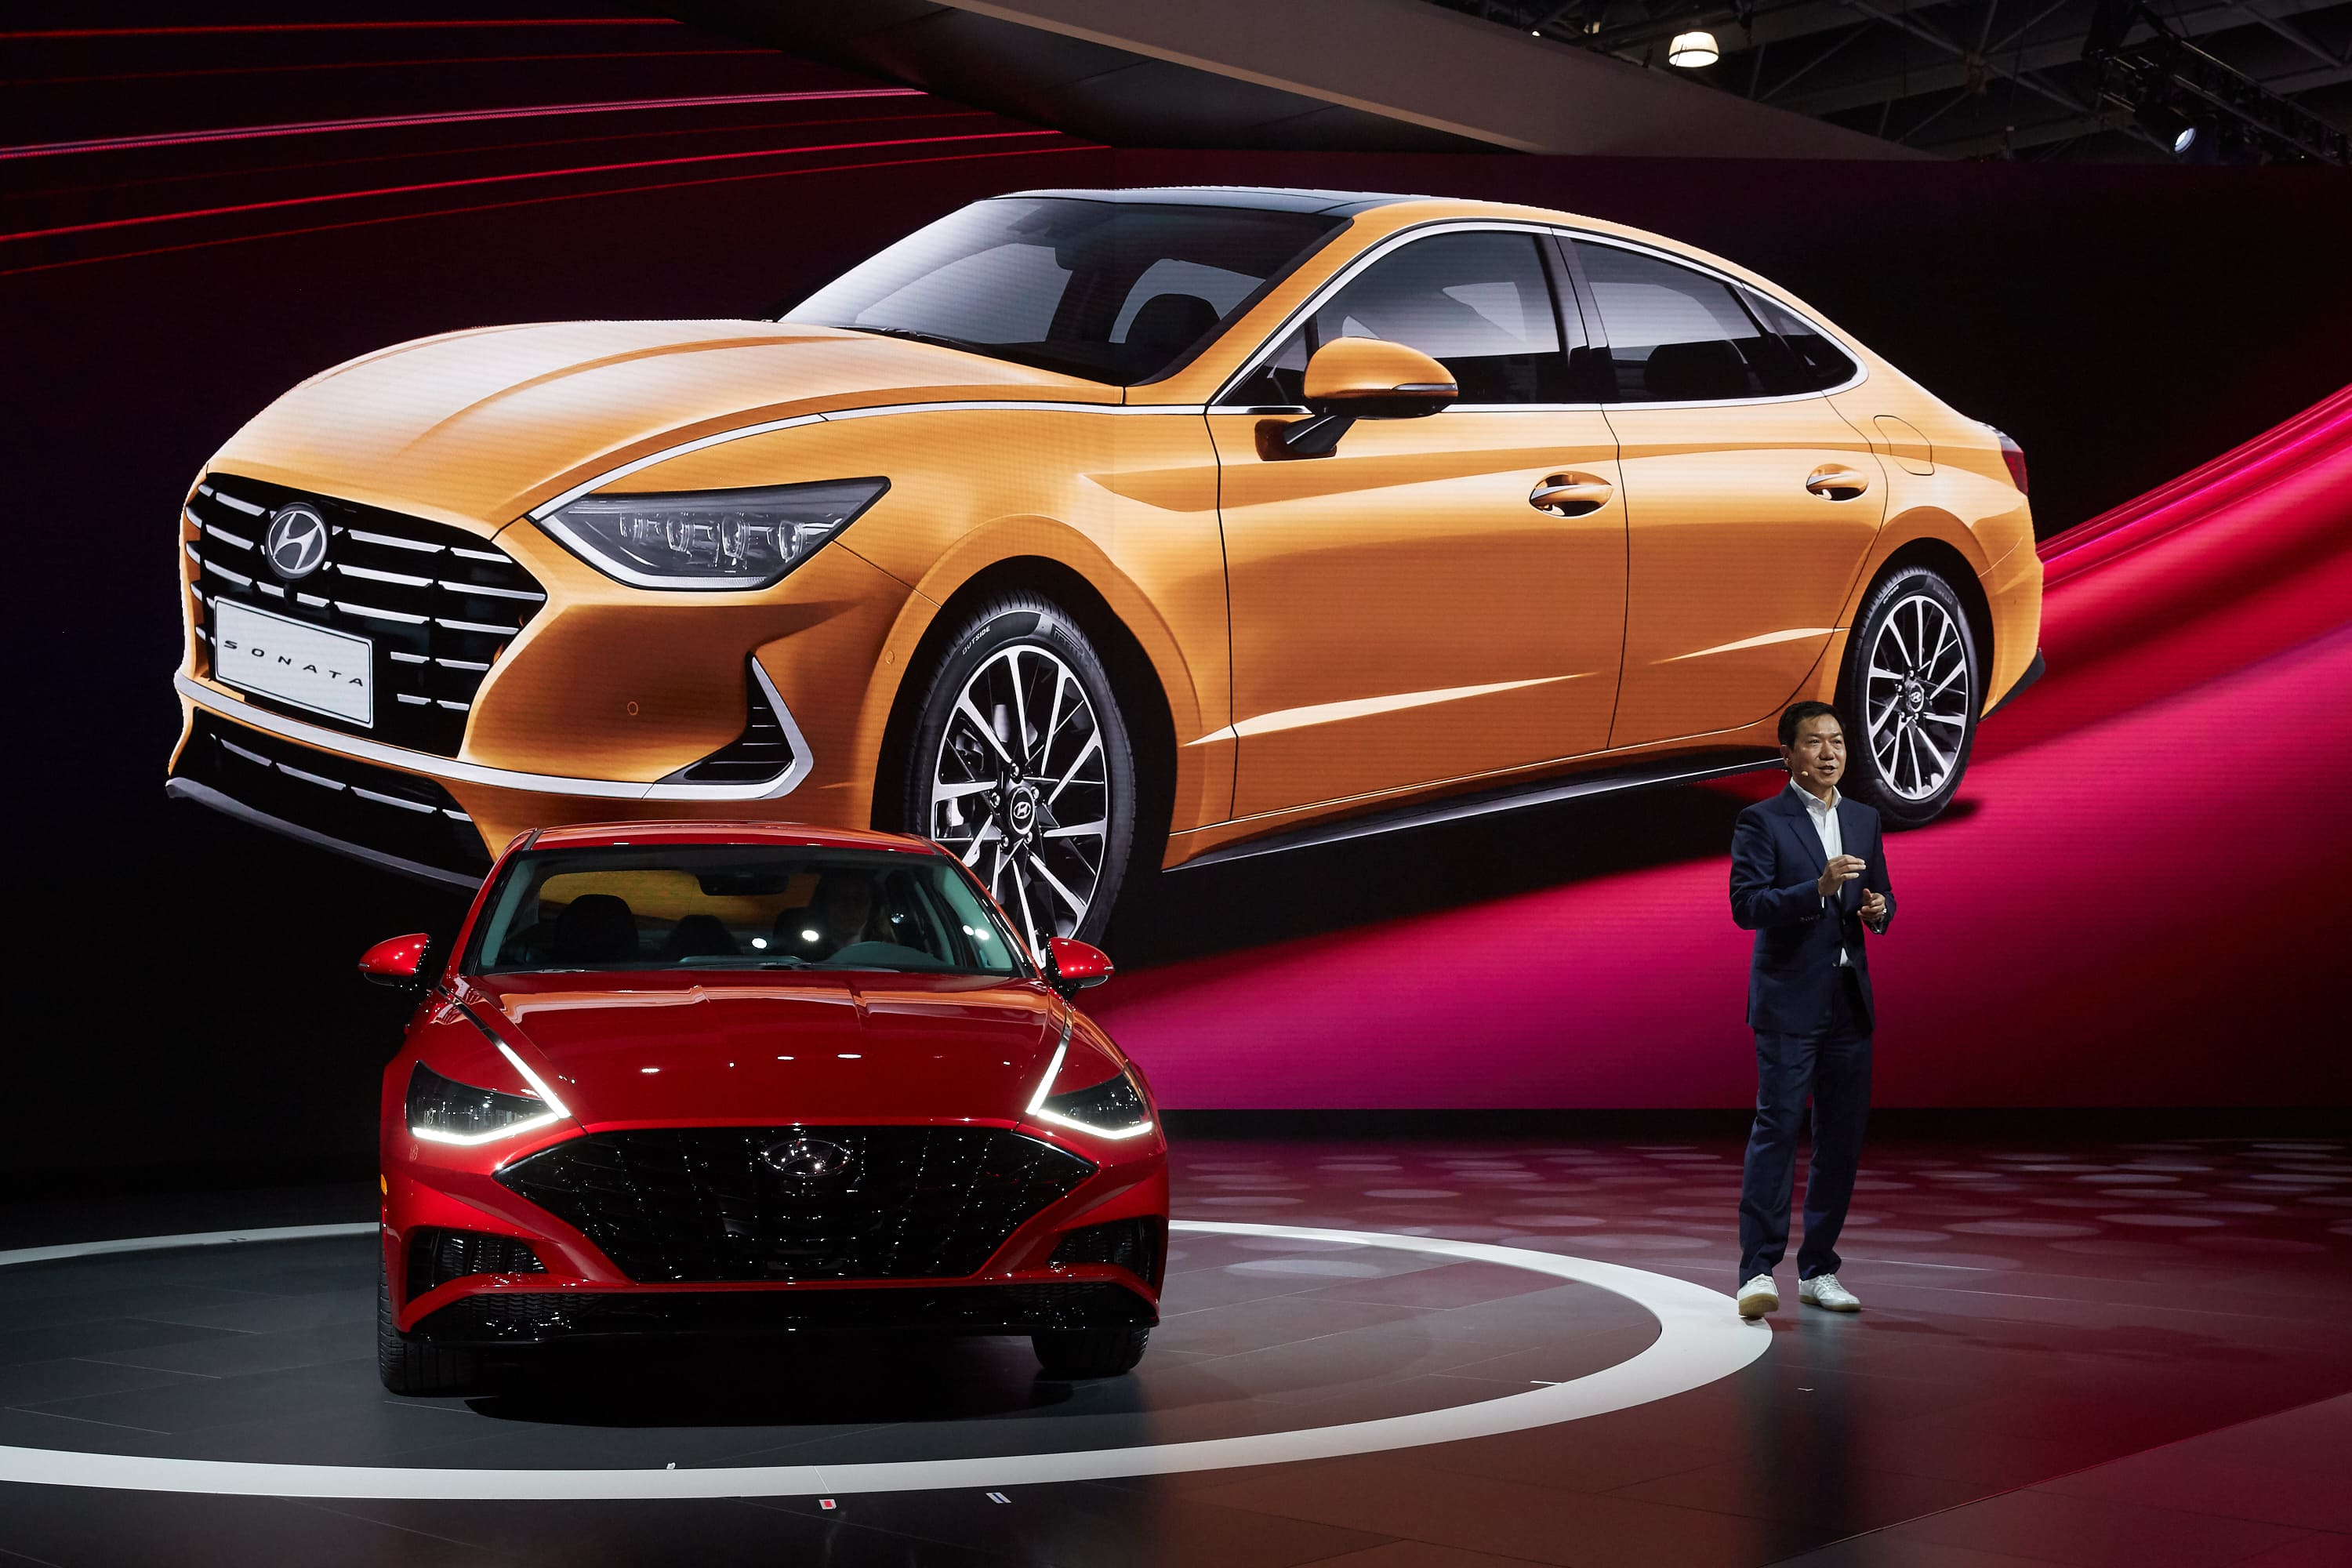 New 2020 Hyundai Sonata Makes Its North American Debut at the New York International Auto Show